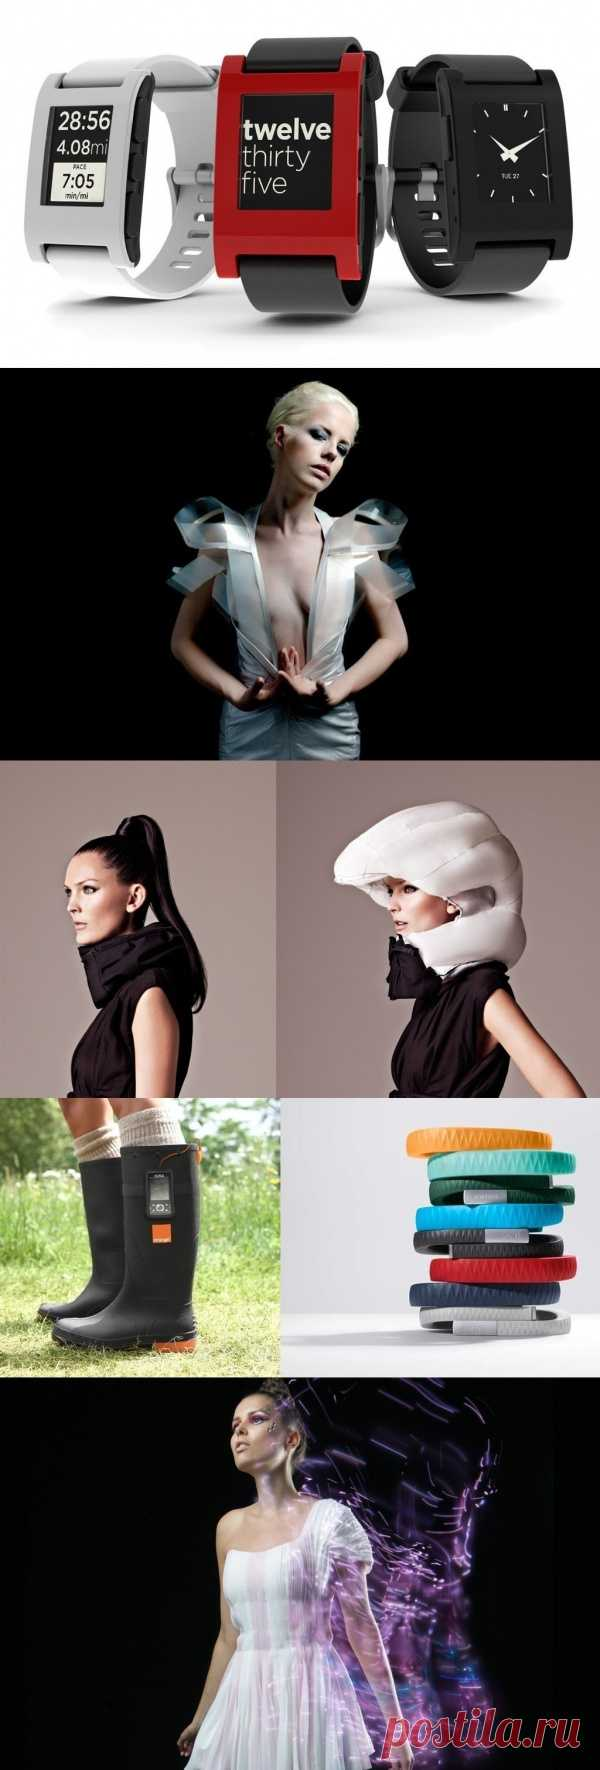 Technology hi-tech for stylish things